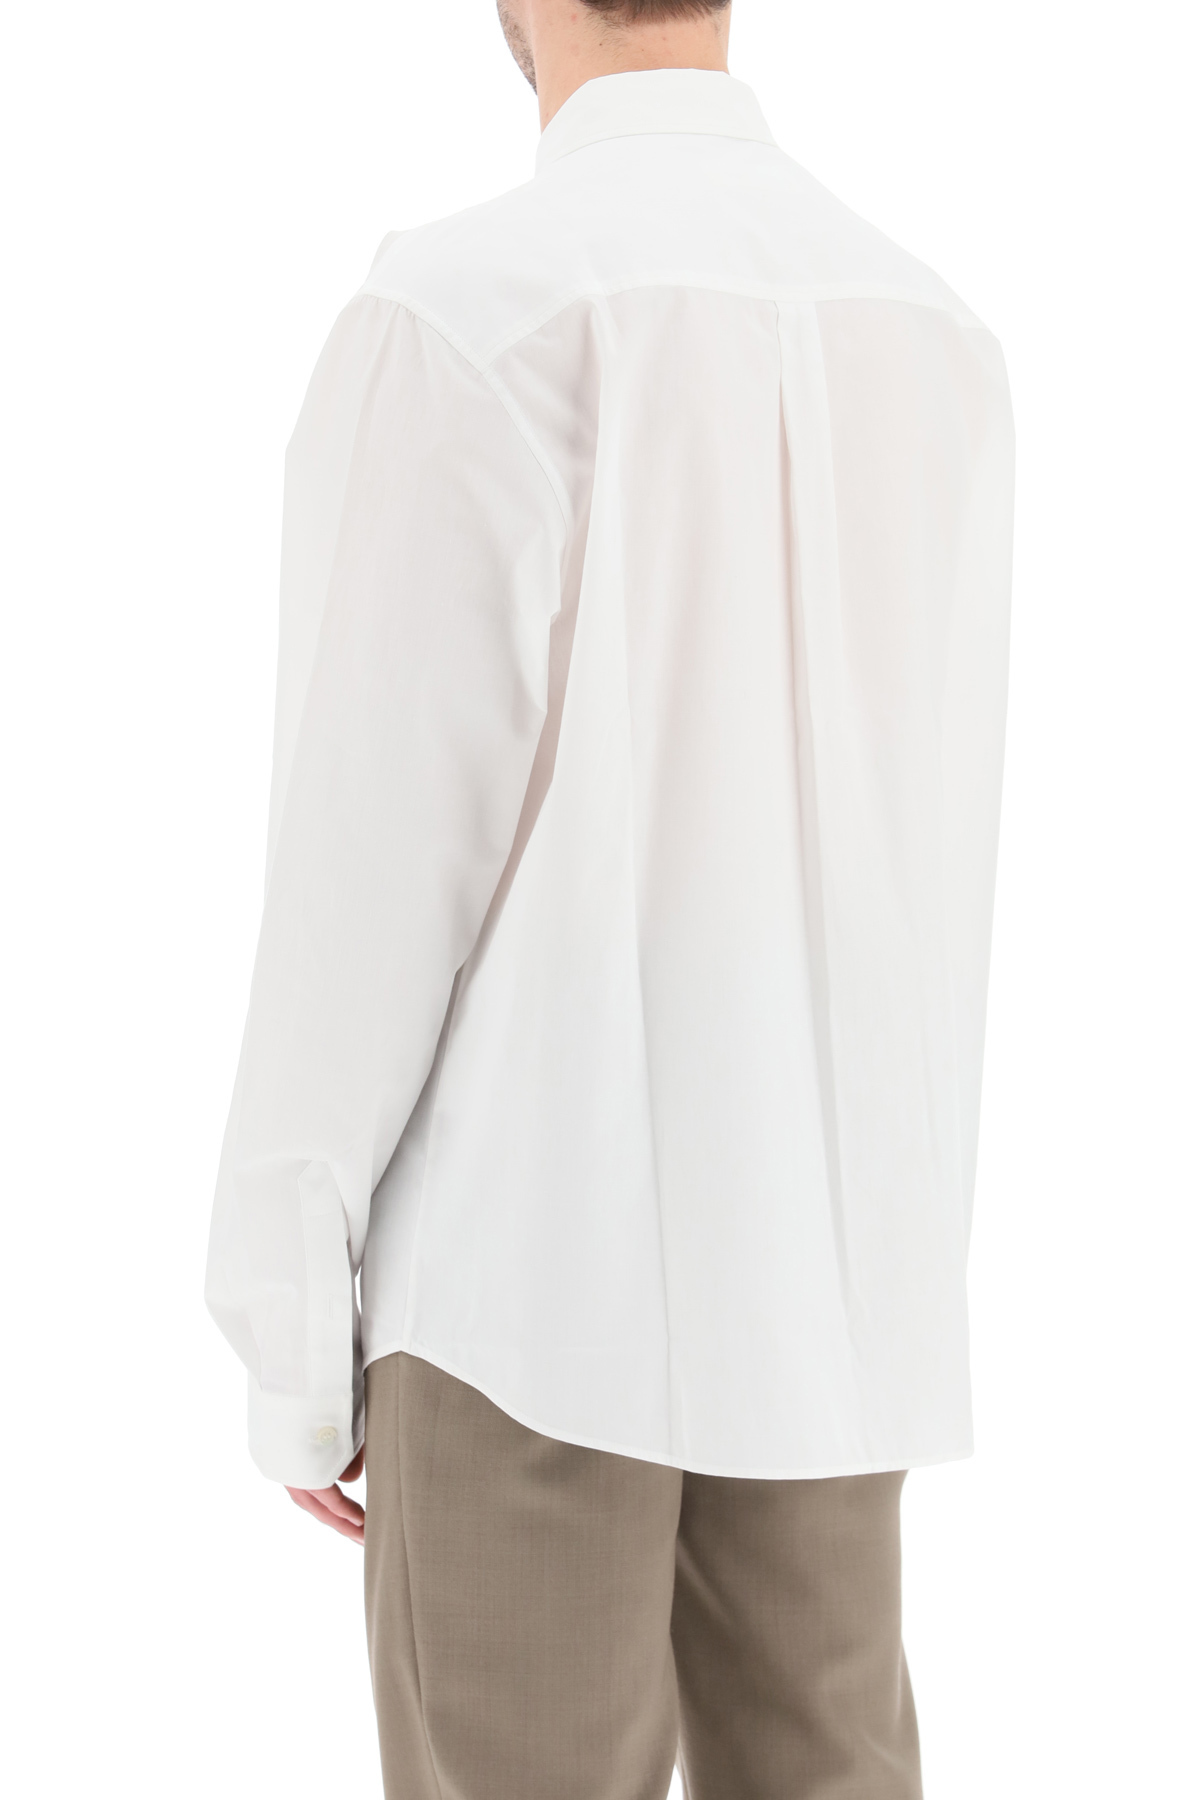 Y/PROJECT Cottons SHIRT WITH ASYMMETRIC COLLAR